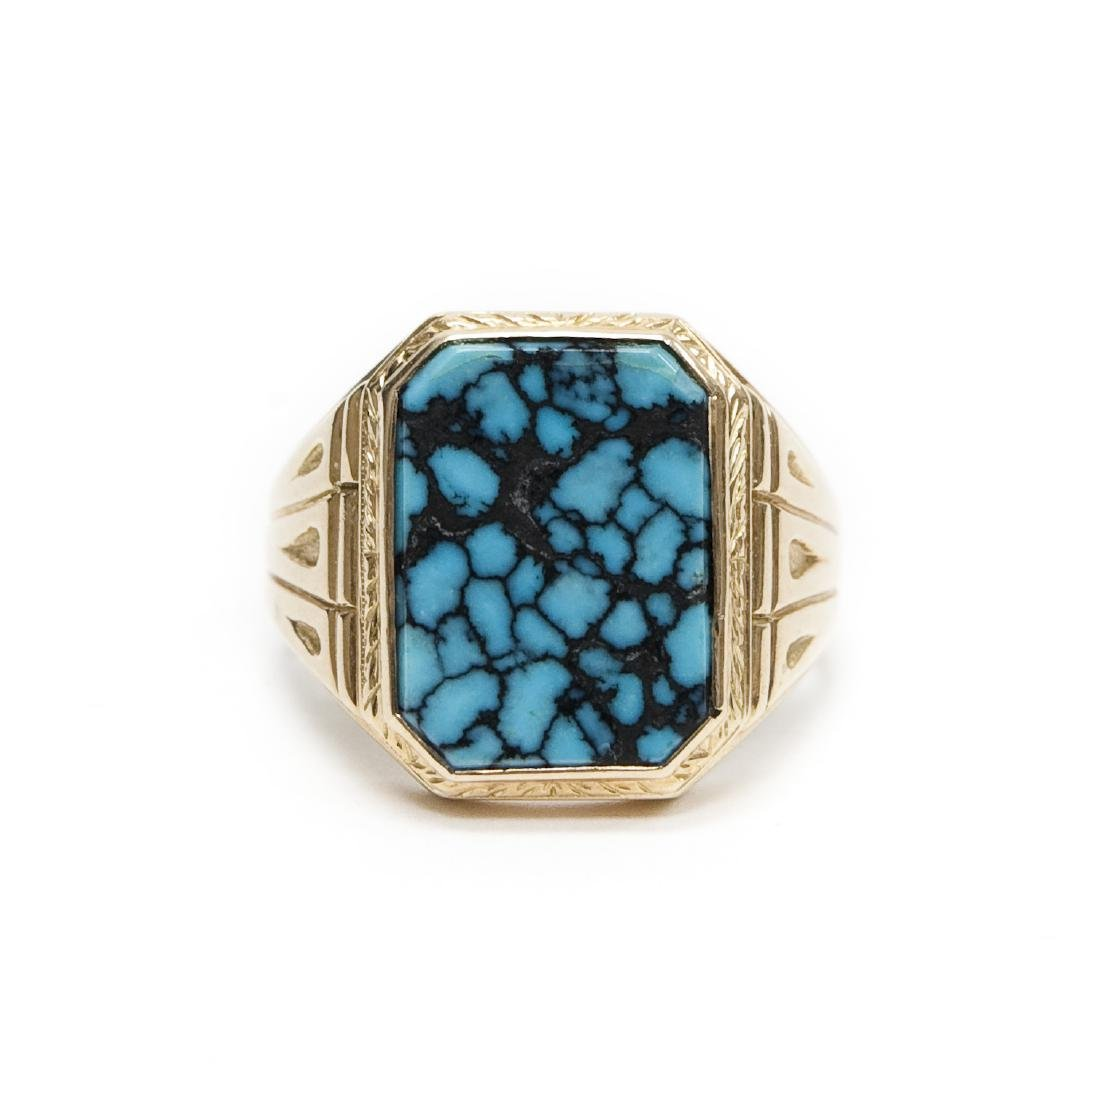 14K Yellow Gold Ring with Turquoise Style Stone.